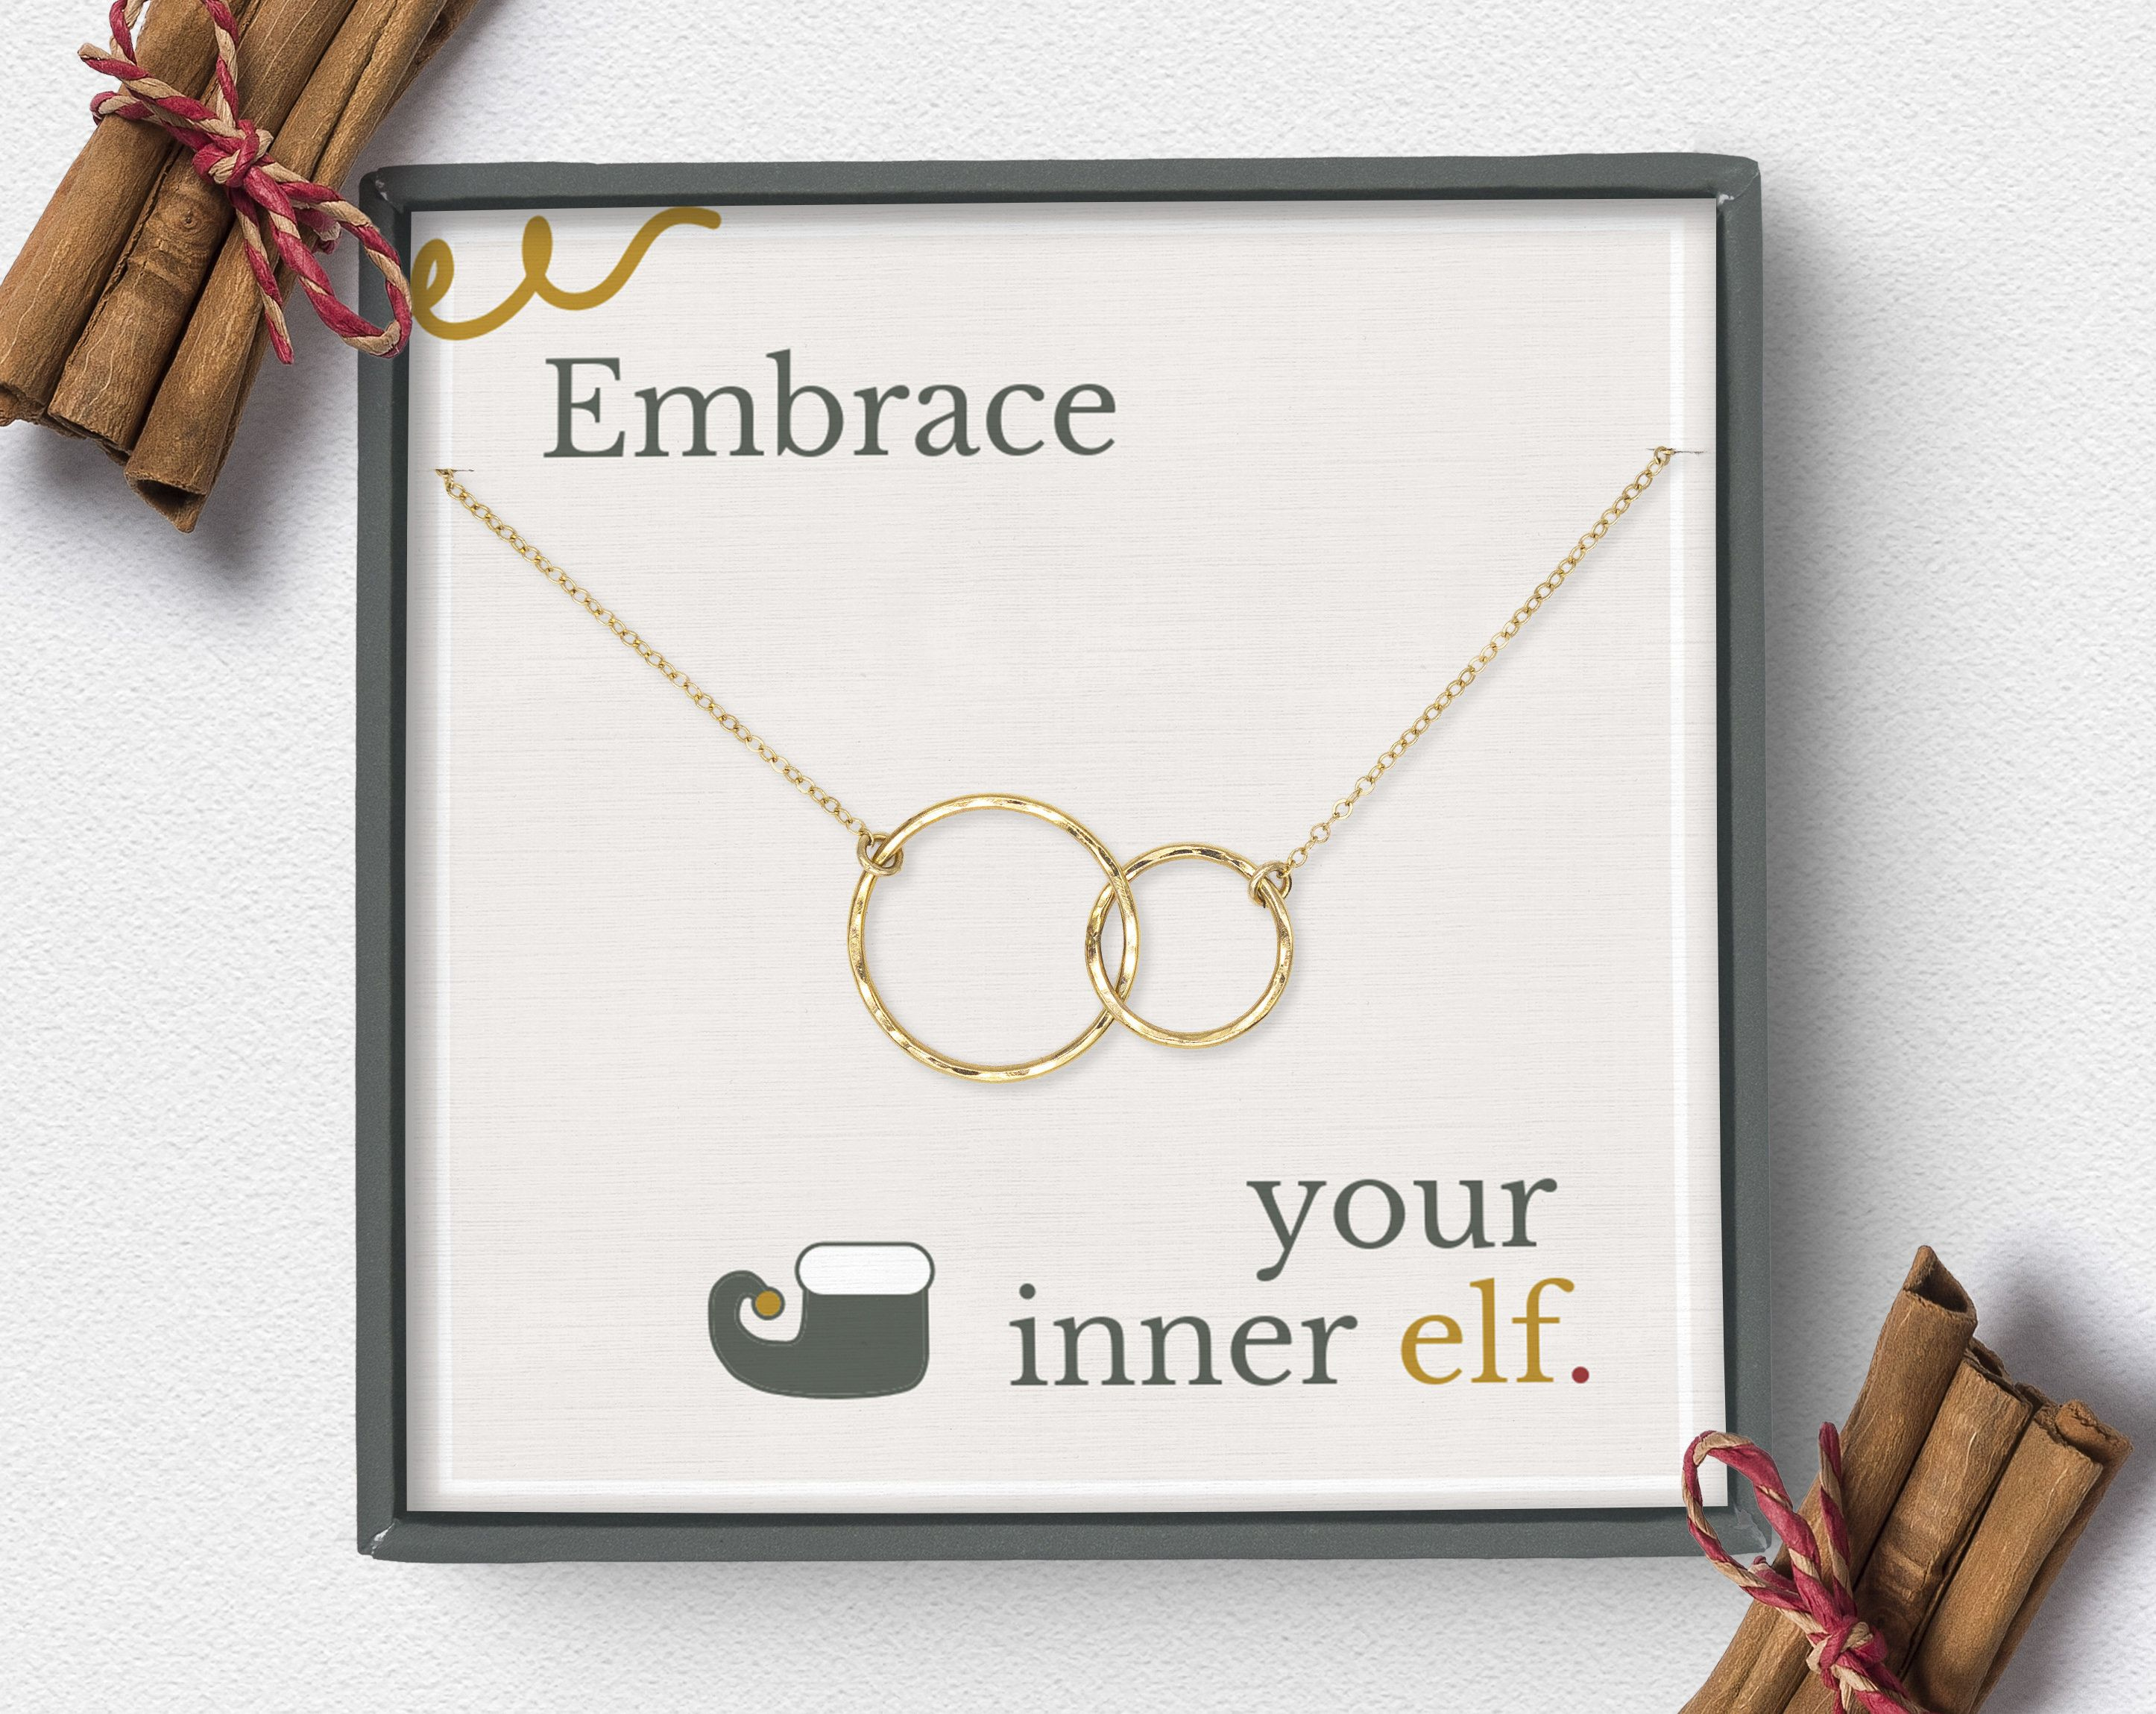 Christmas Gift Jewelry Necklace For Friends Funny Christmas Gift Dainty Simple Circle Neck Christmas Gift Jewelry Christmas Gifts For Girls Christmas Jewelry